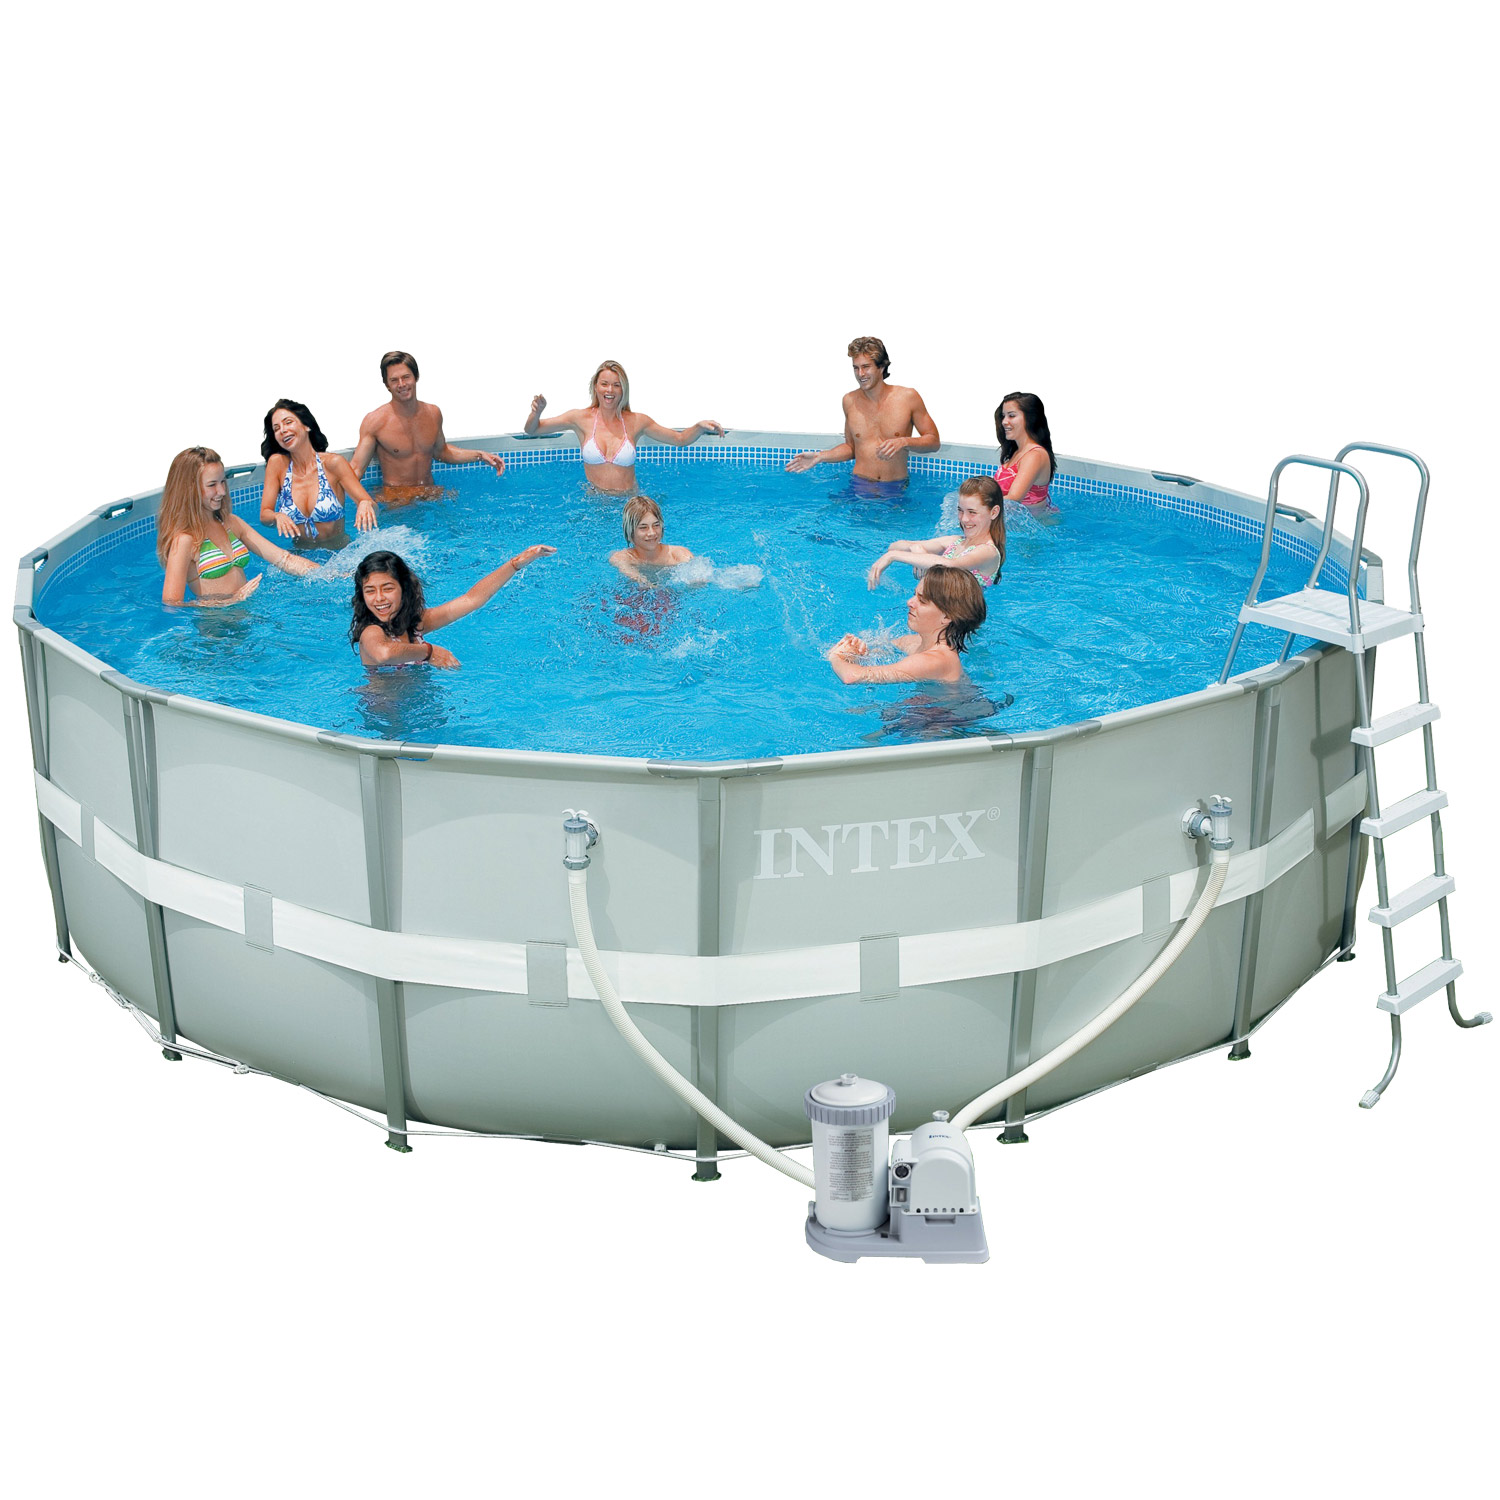 Intex 488x122 schwimmbecken swimming pool schwimmbad for Stahl pool oval